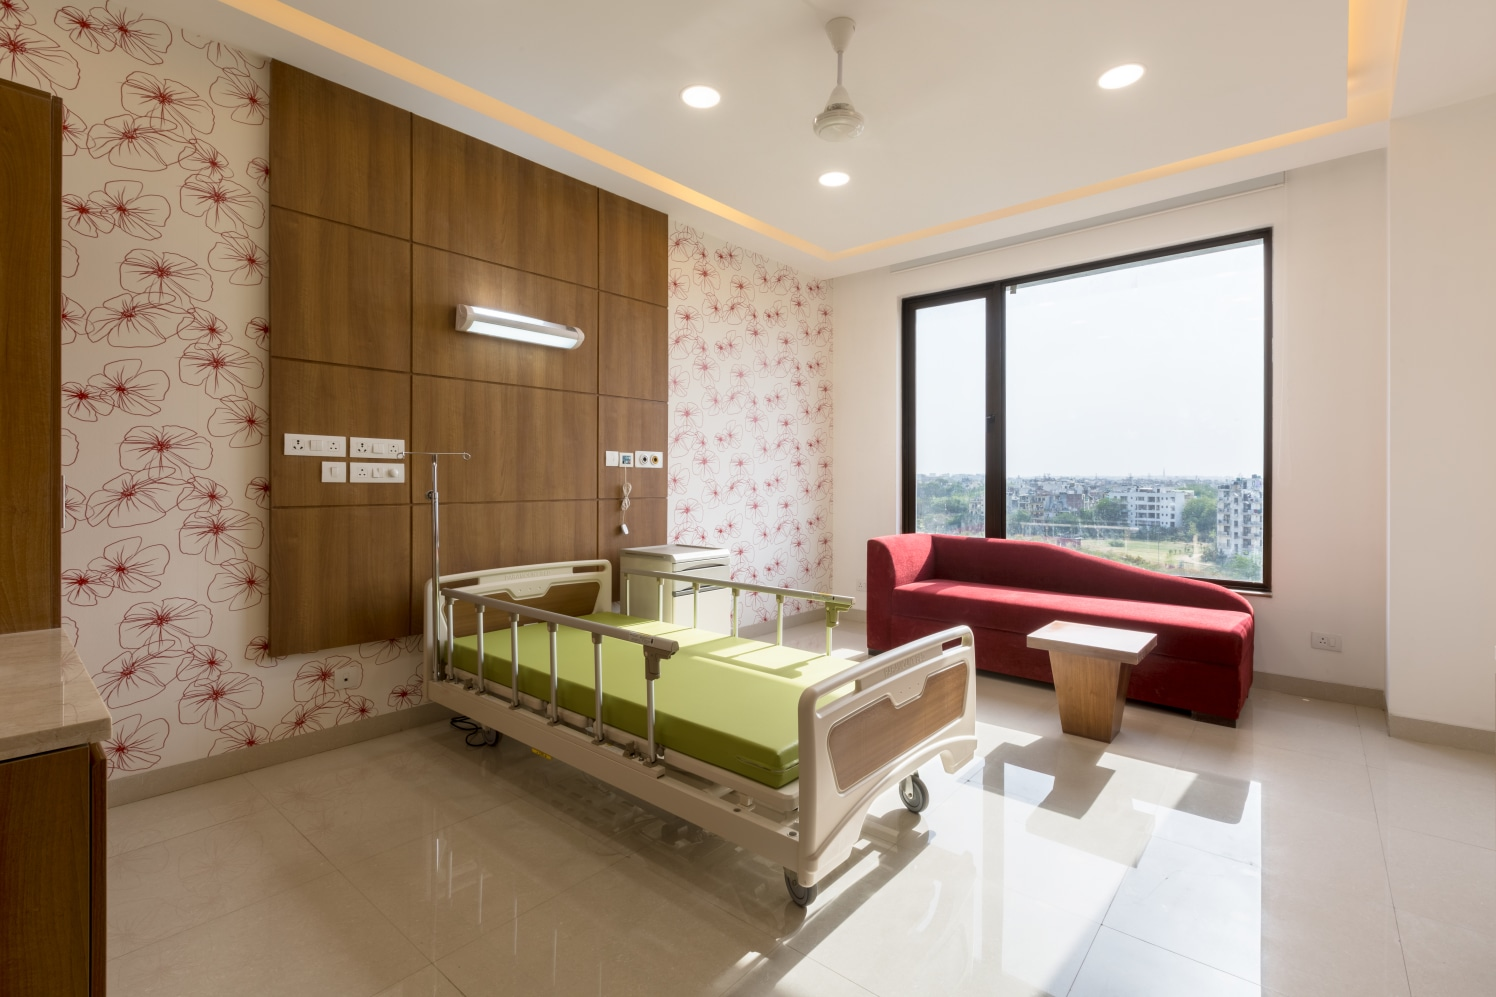 Hospital Wards With Modern Touch by Ravideep Singh Modern | Interior Design Photos & Ideas